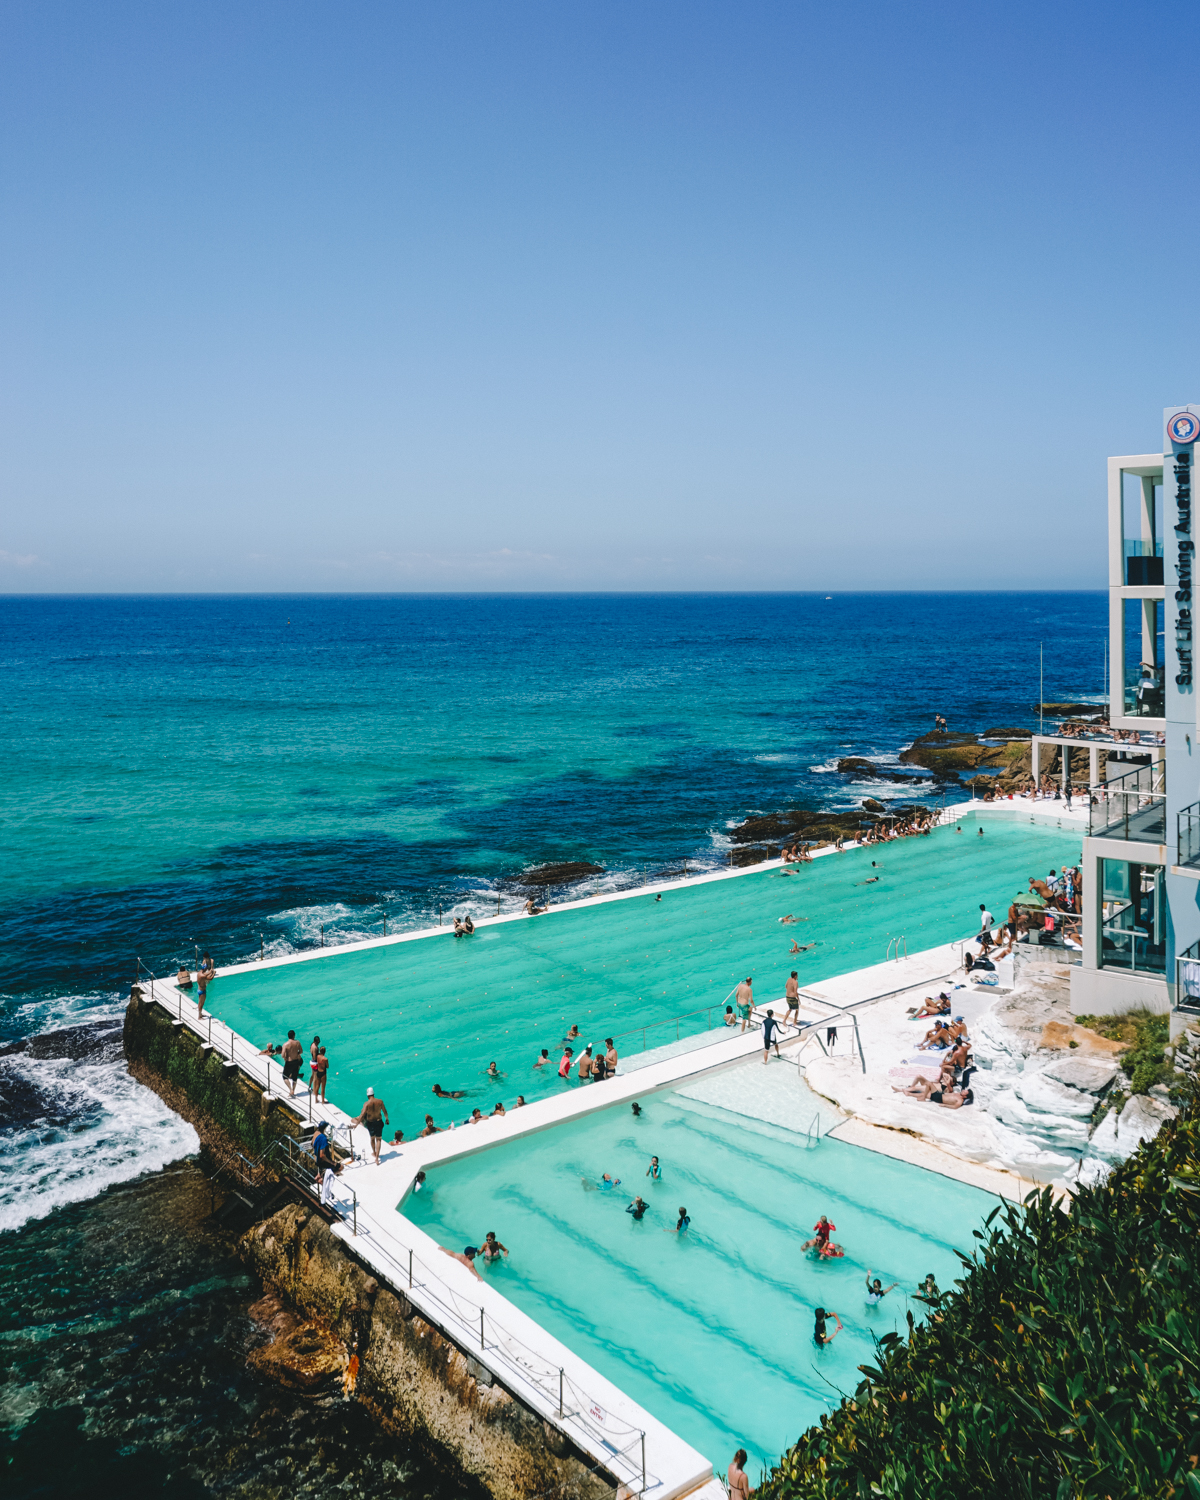 4fbe38ff7c The Bondi Icebergs have been on my bucketlist of sites to see for a few  years now. The photos of the pools have made their way around Instagram and  have had ...